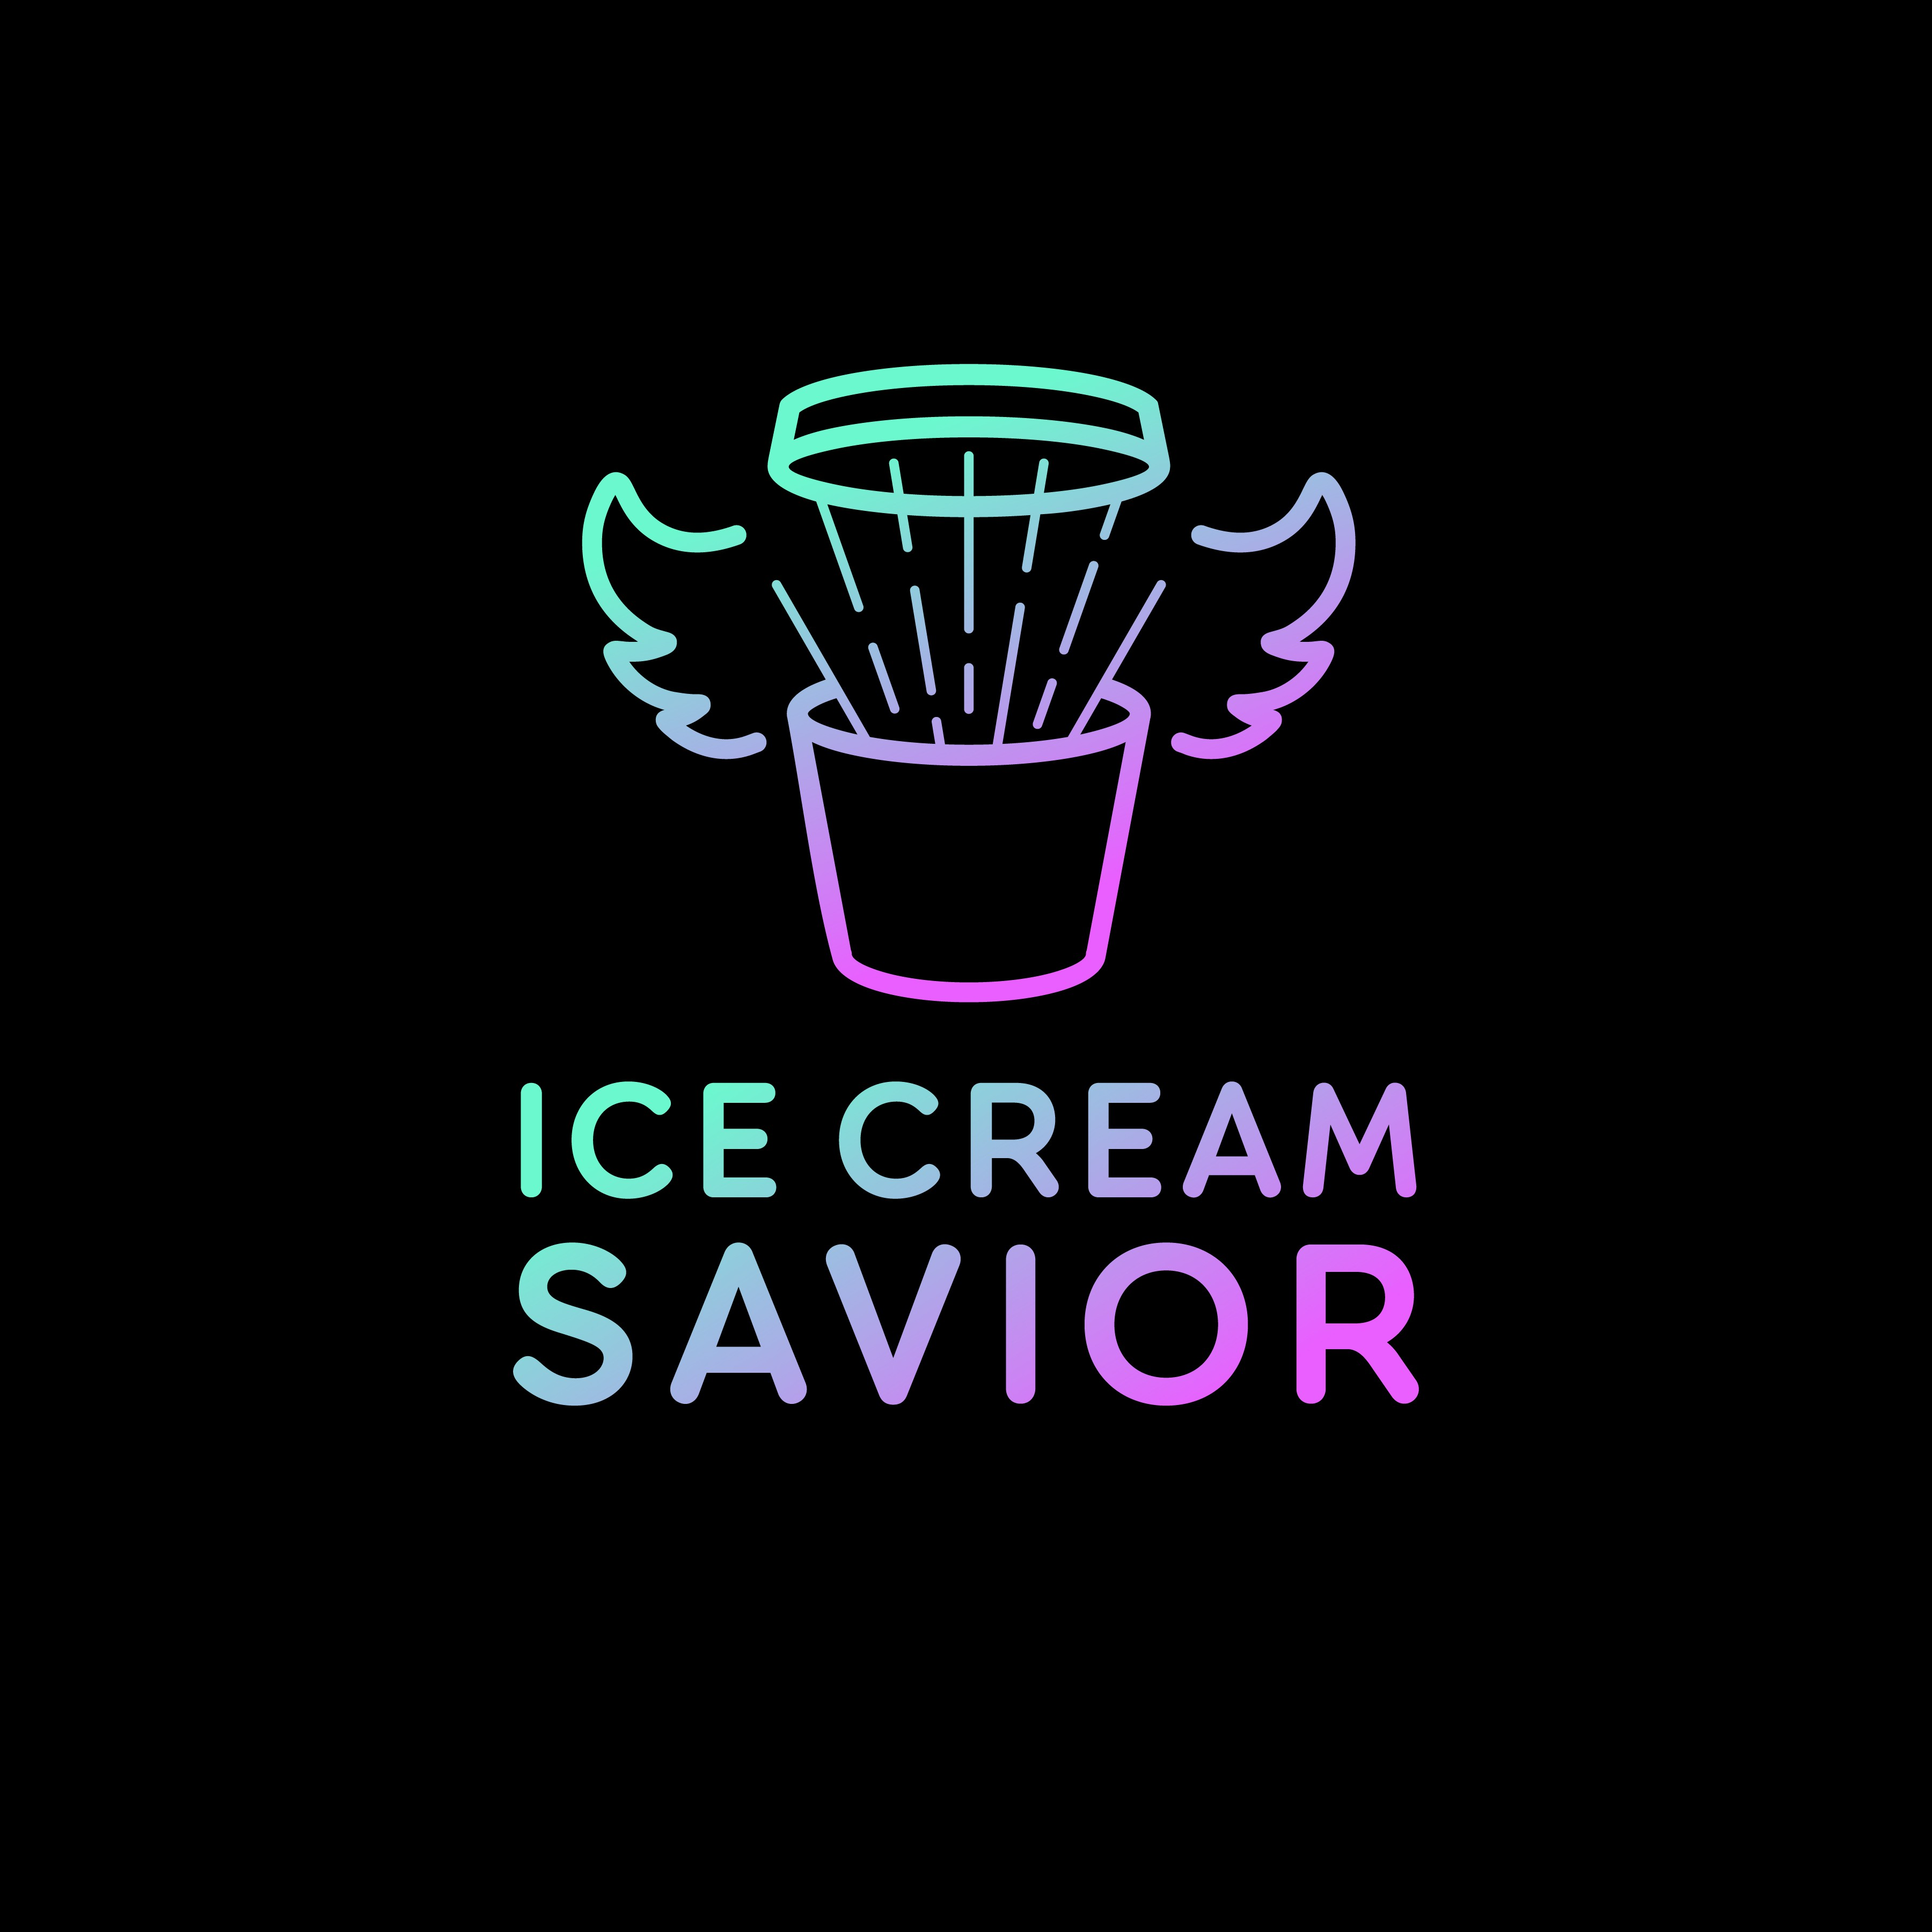 """Ice Cream Savior. A cheeky logo for the product that """"Saves"""" your ice cream"""